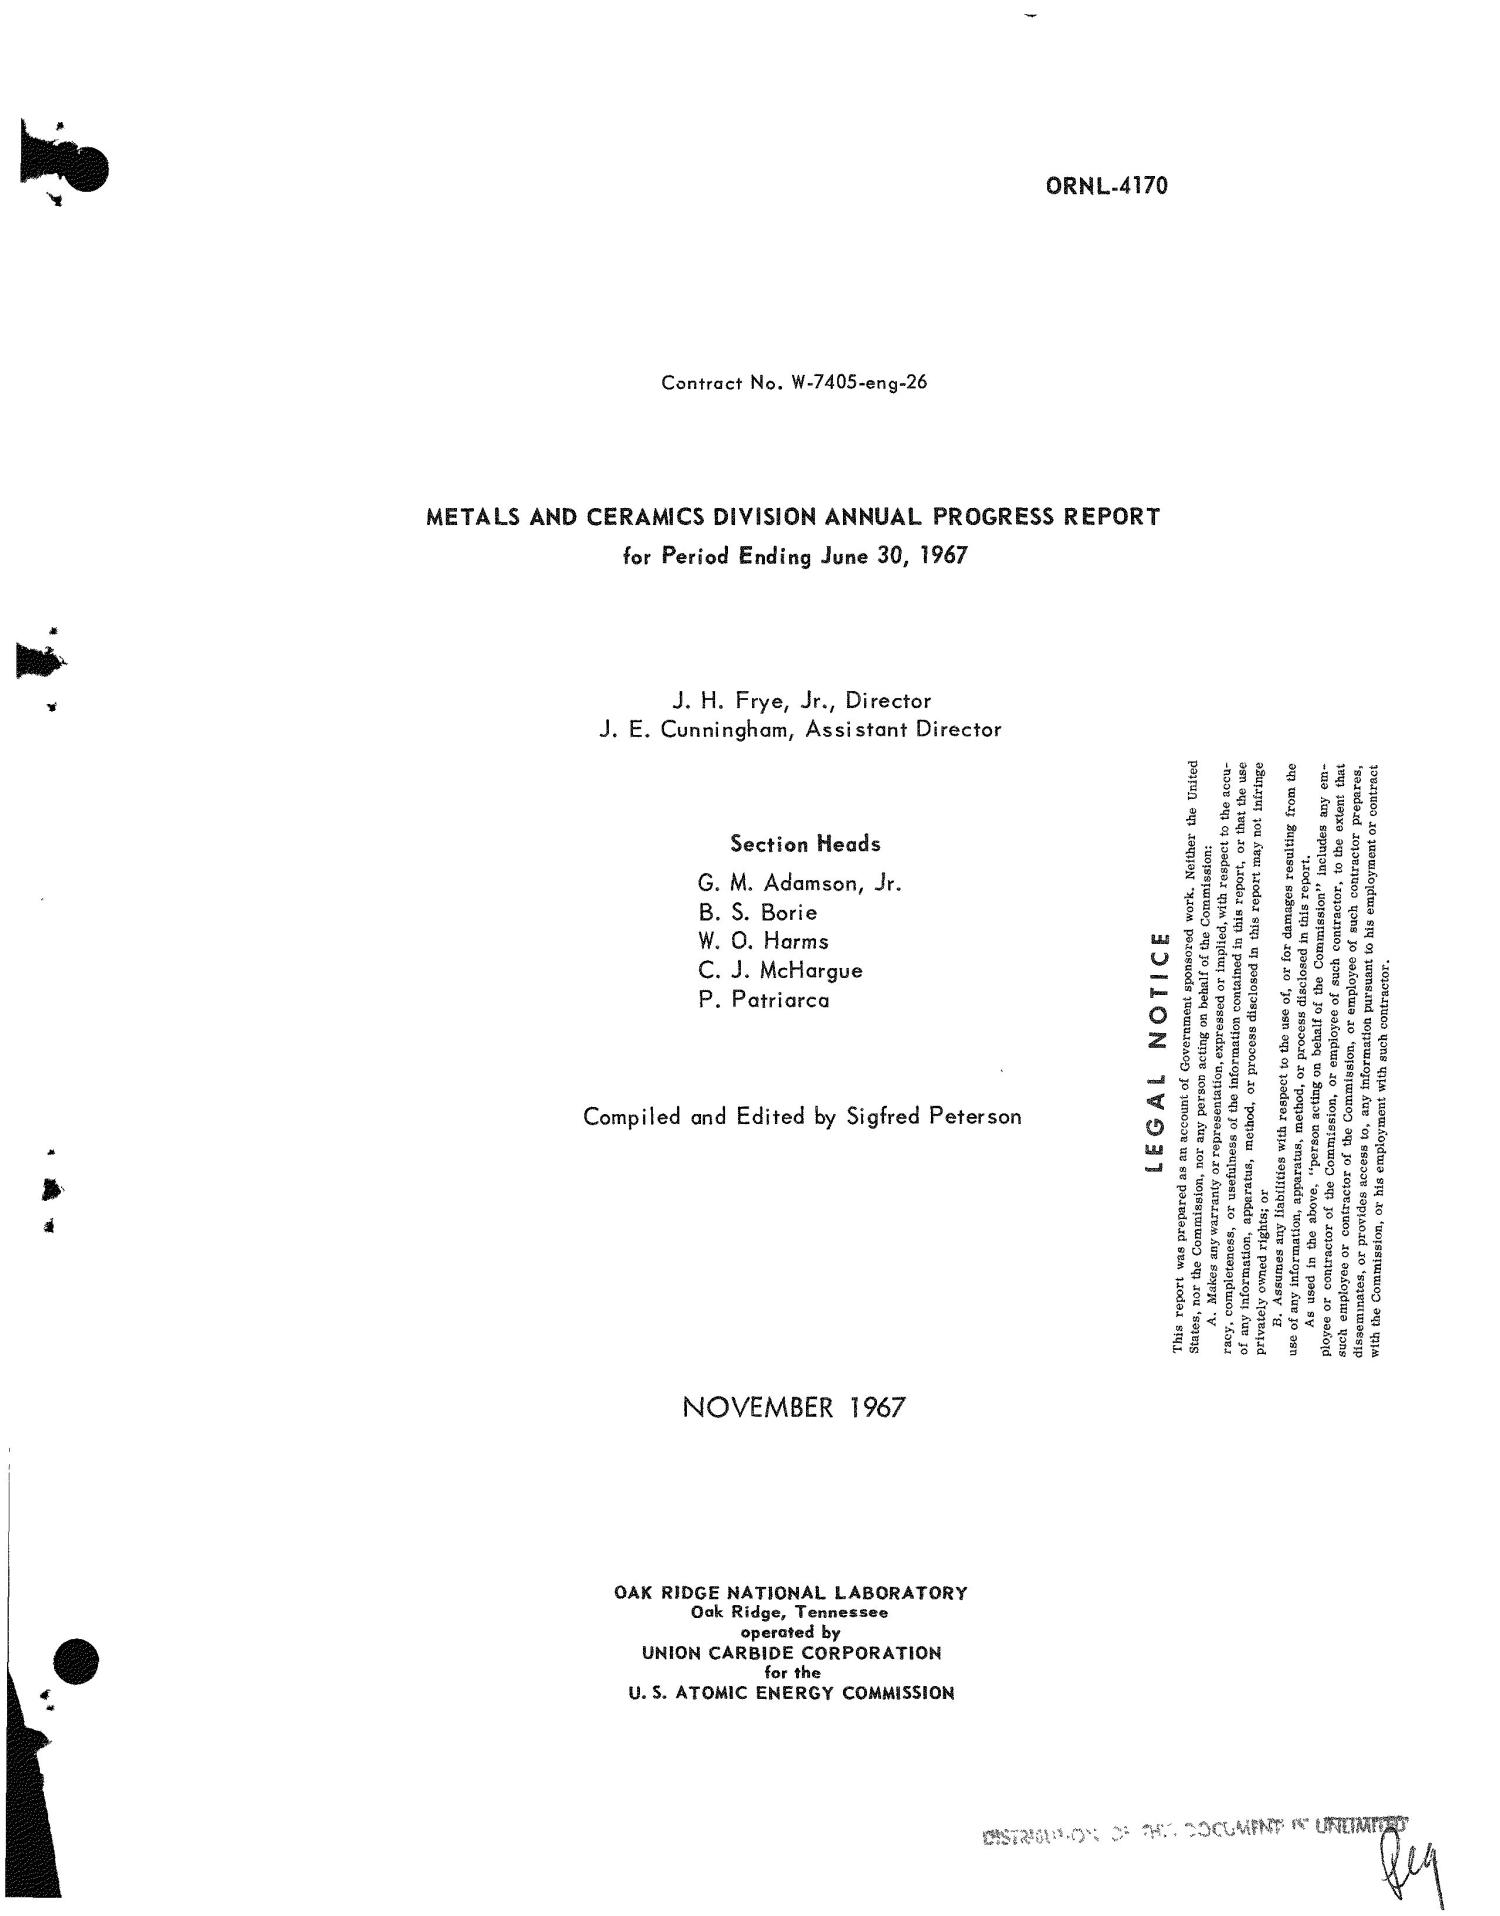 Metals and Ceramics Division Annual Progress Report for Period Ending June 30, 1967.                                                                                                      [Sequence #]: 1 of 300